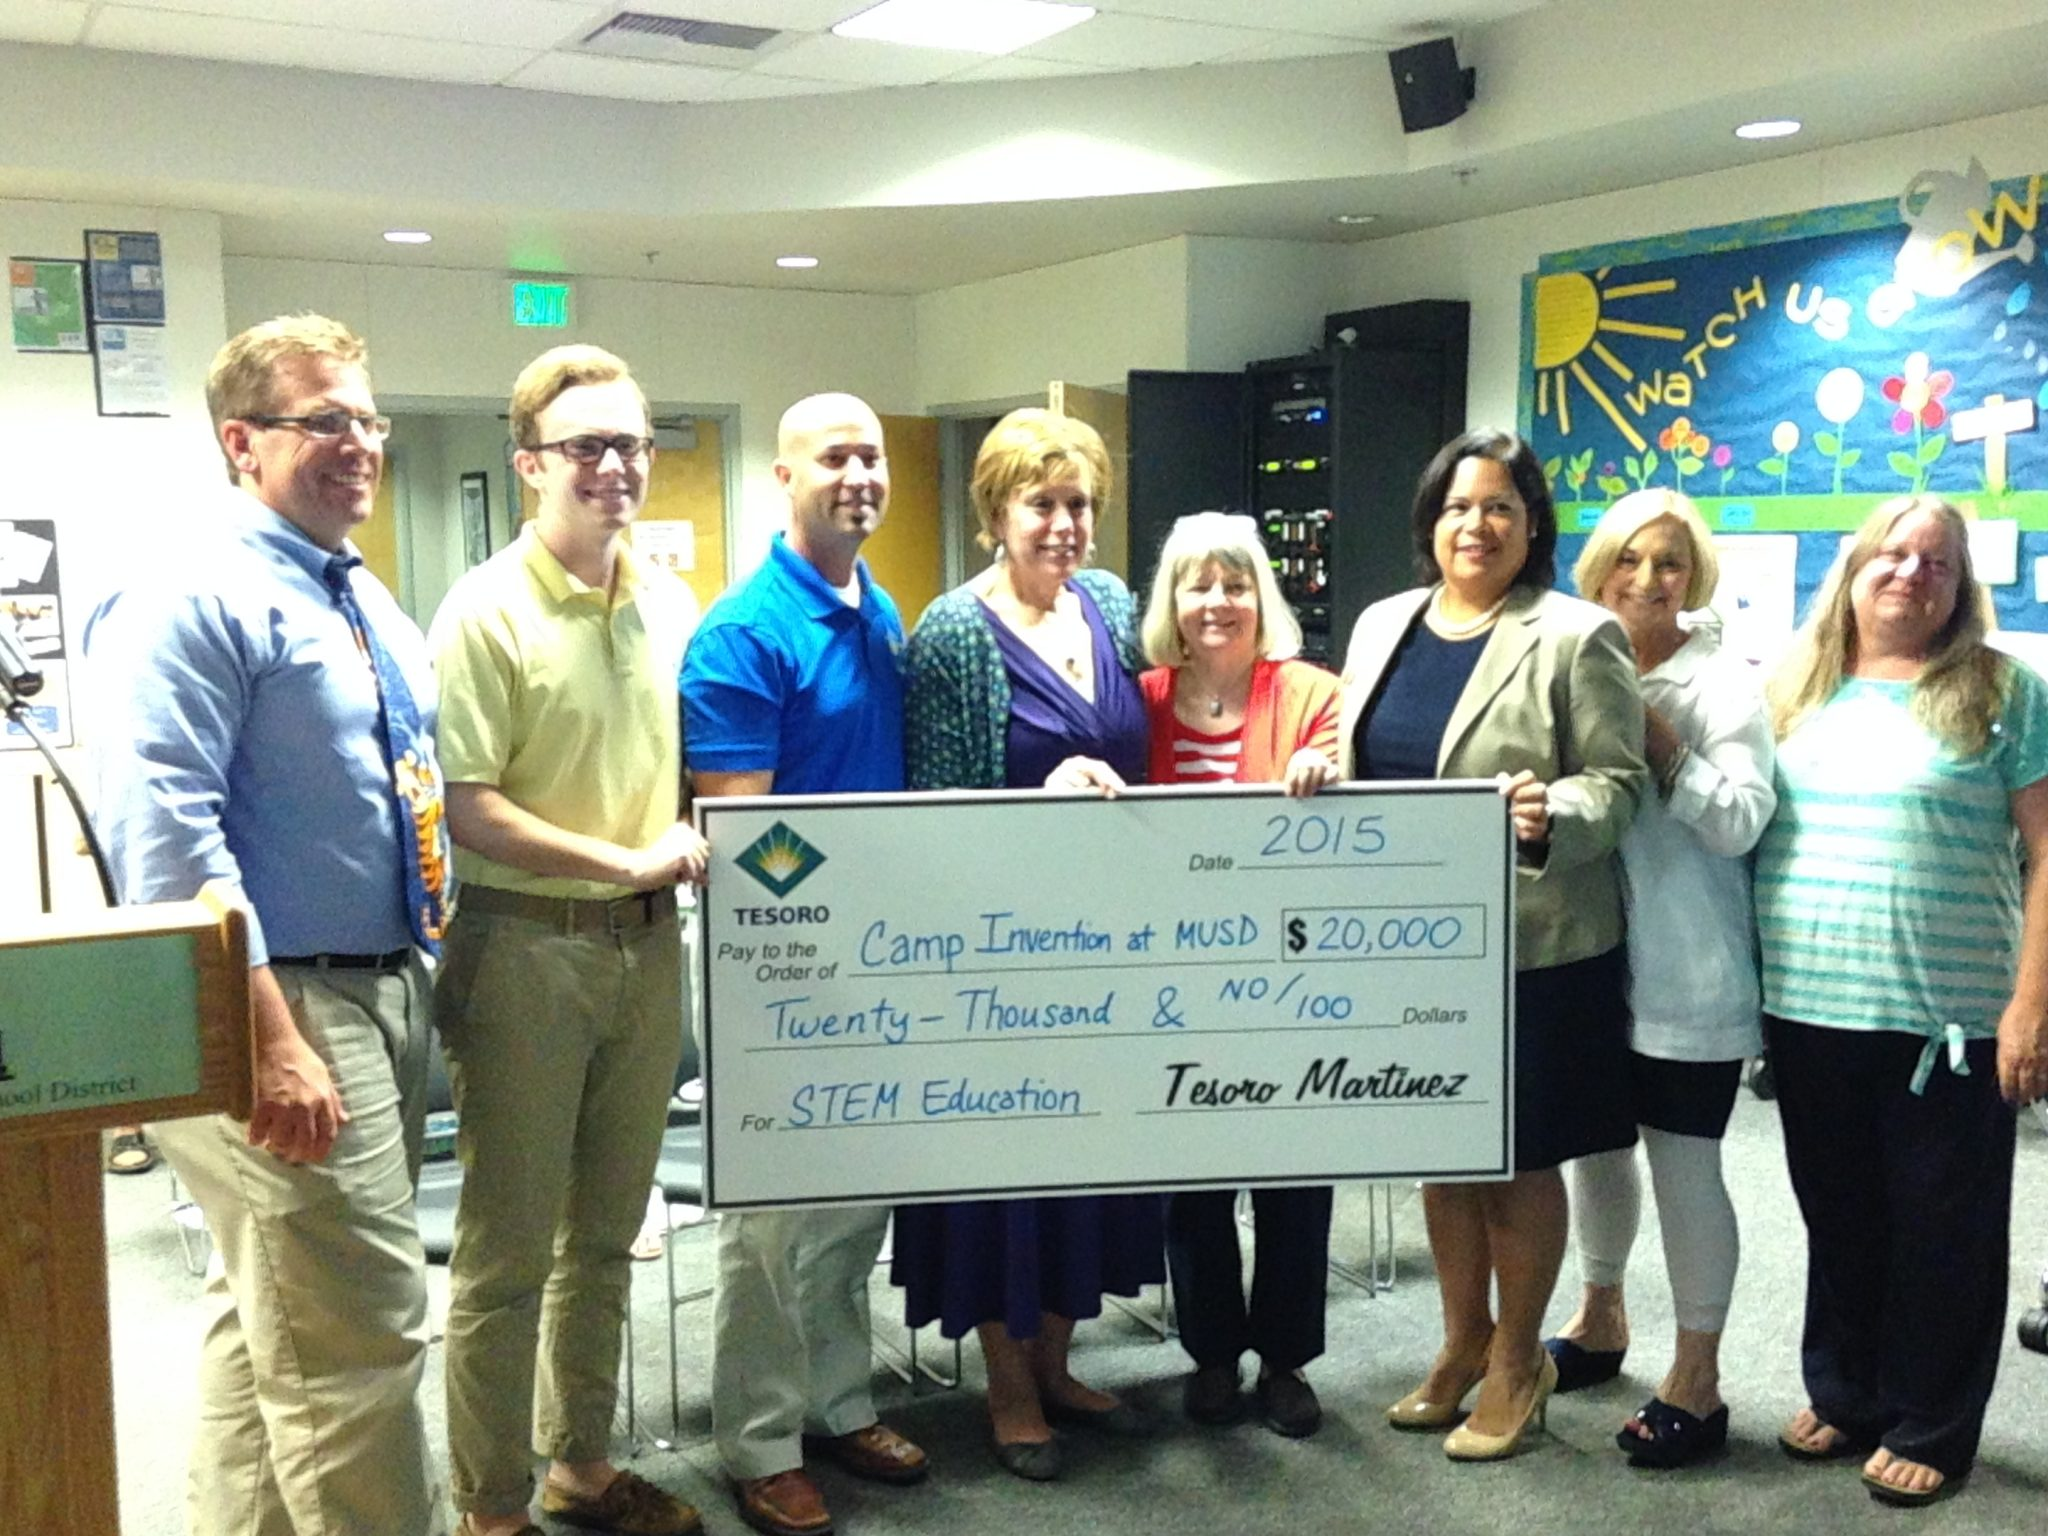 "Tesoro gifts the Martinez Unified School District (MUSD) STEM education camp, ""Camp Invention,"" with a check for $20,000. From left: MUSD Chairman John Fuller, student representative Blake Johnson, Tesoro's Brian Nunnally, MUSD Superintendent Rami Muth, Boardmember Kathi McLaughlin, Vice Chairperson Deidre Siguenza, Clerk Bobbi Horack and Boardmember Denise Elsken. (DONNA BETH WEILENMAN / Martinez Tribune)"